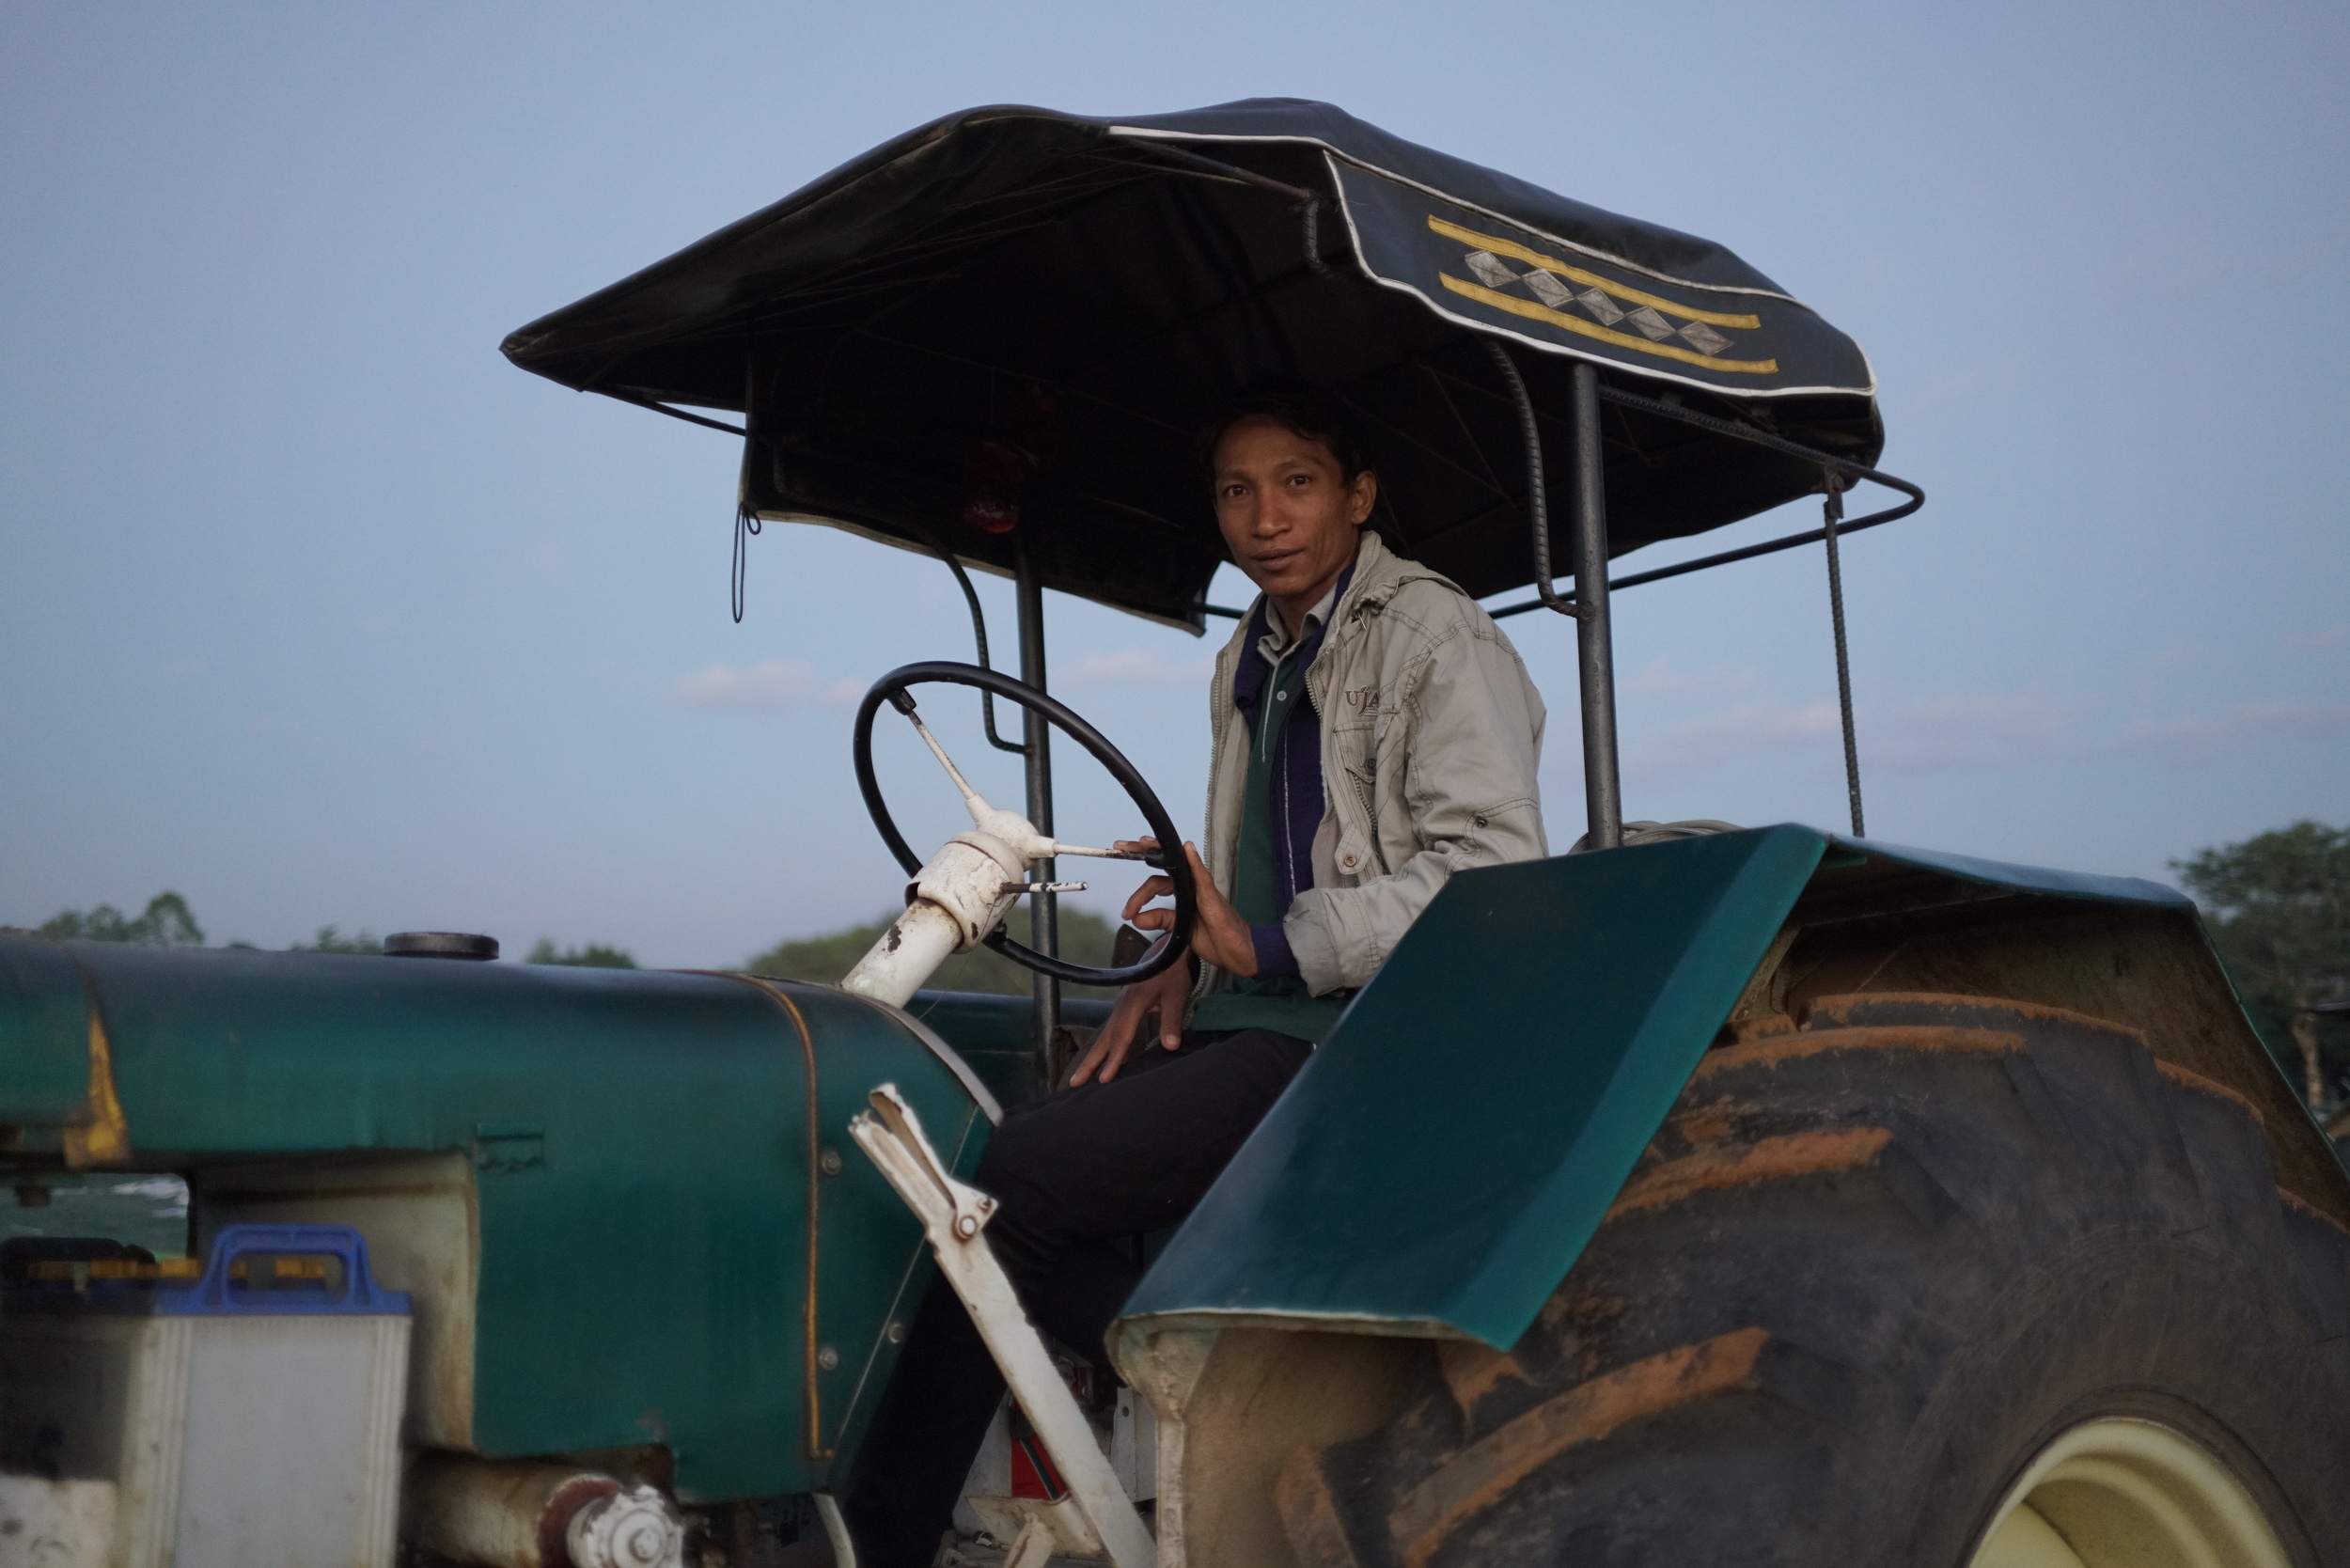 BAL-18_TractorGuy-1small.JPG